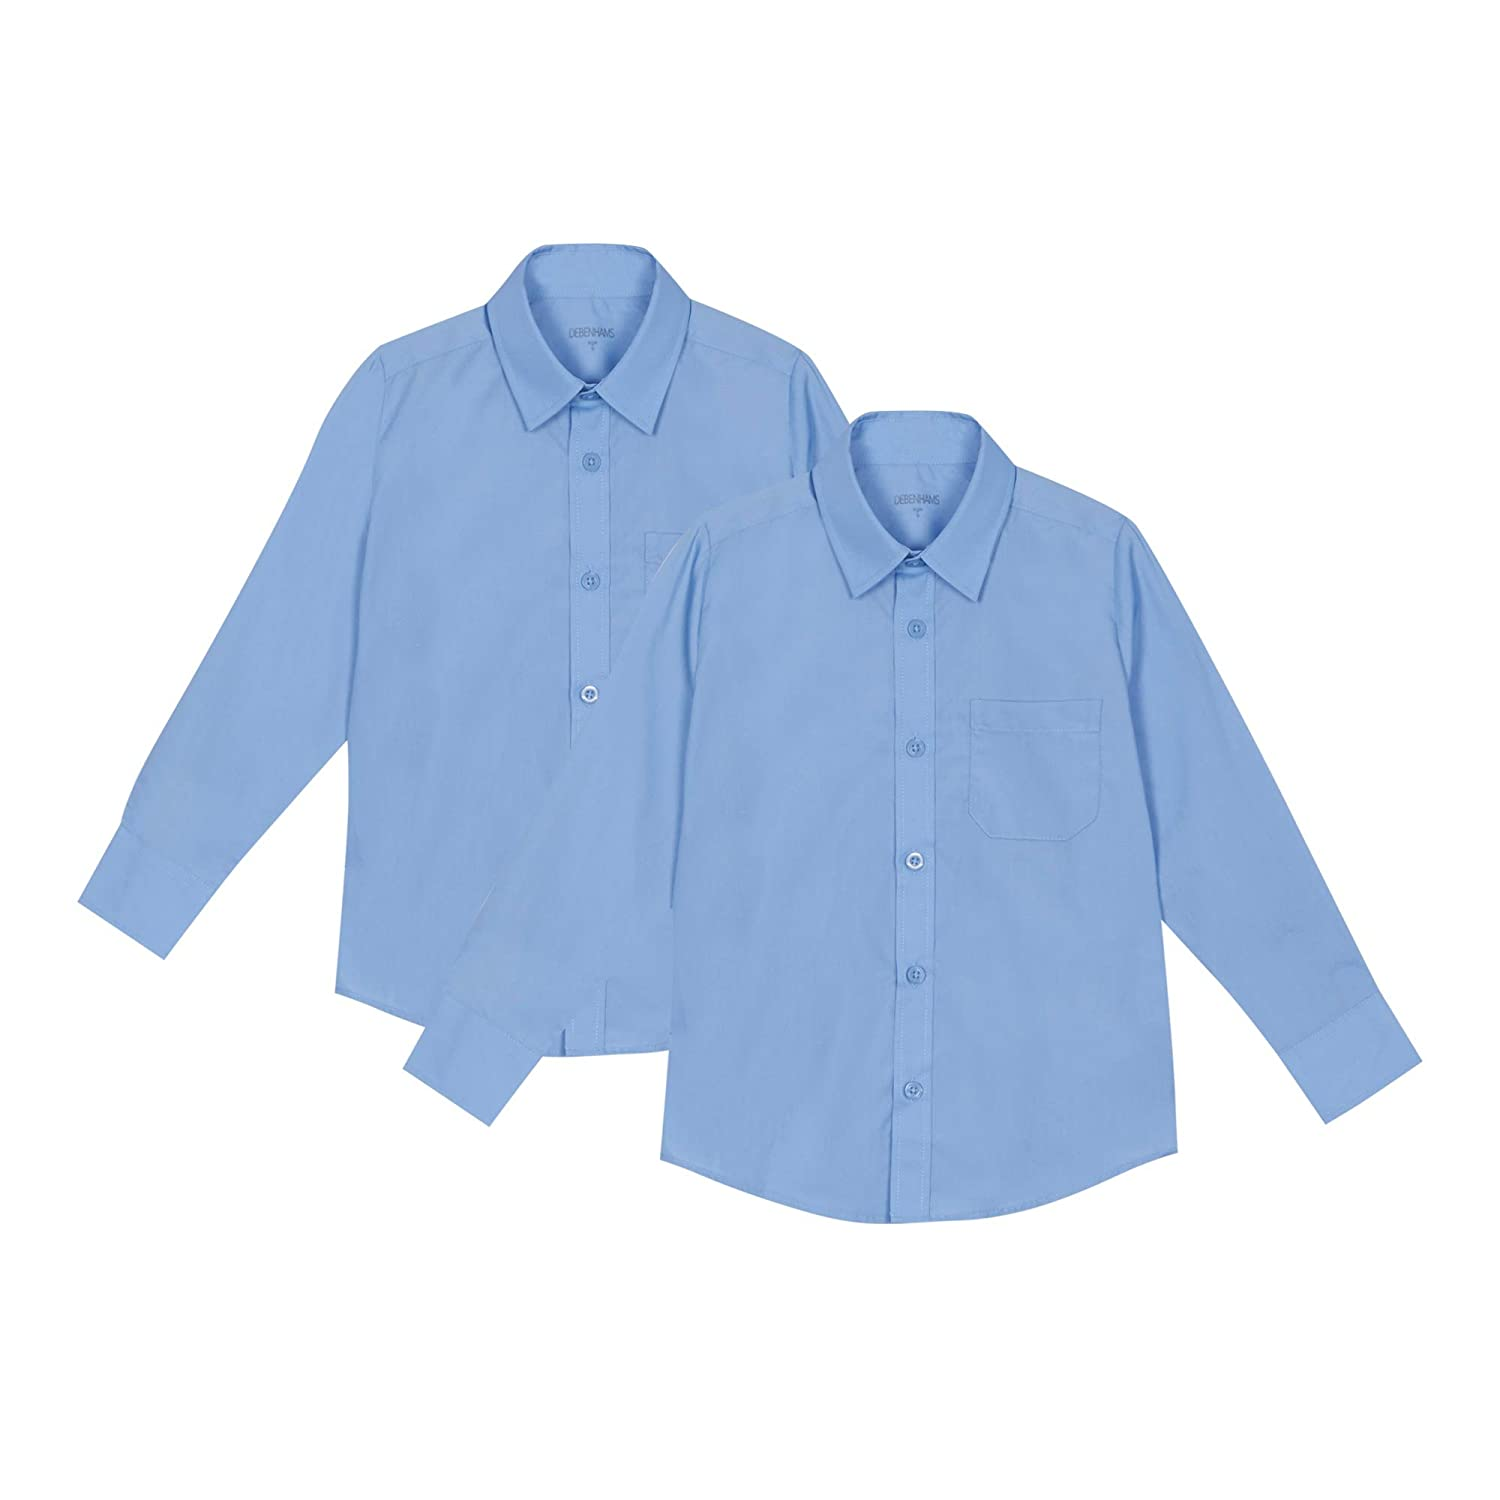 Debenhams Kids 'Set of 2 Boys' Blue Regular Fit School Shirts